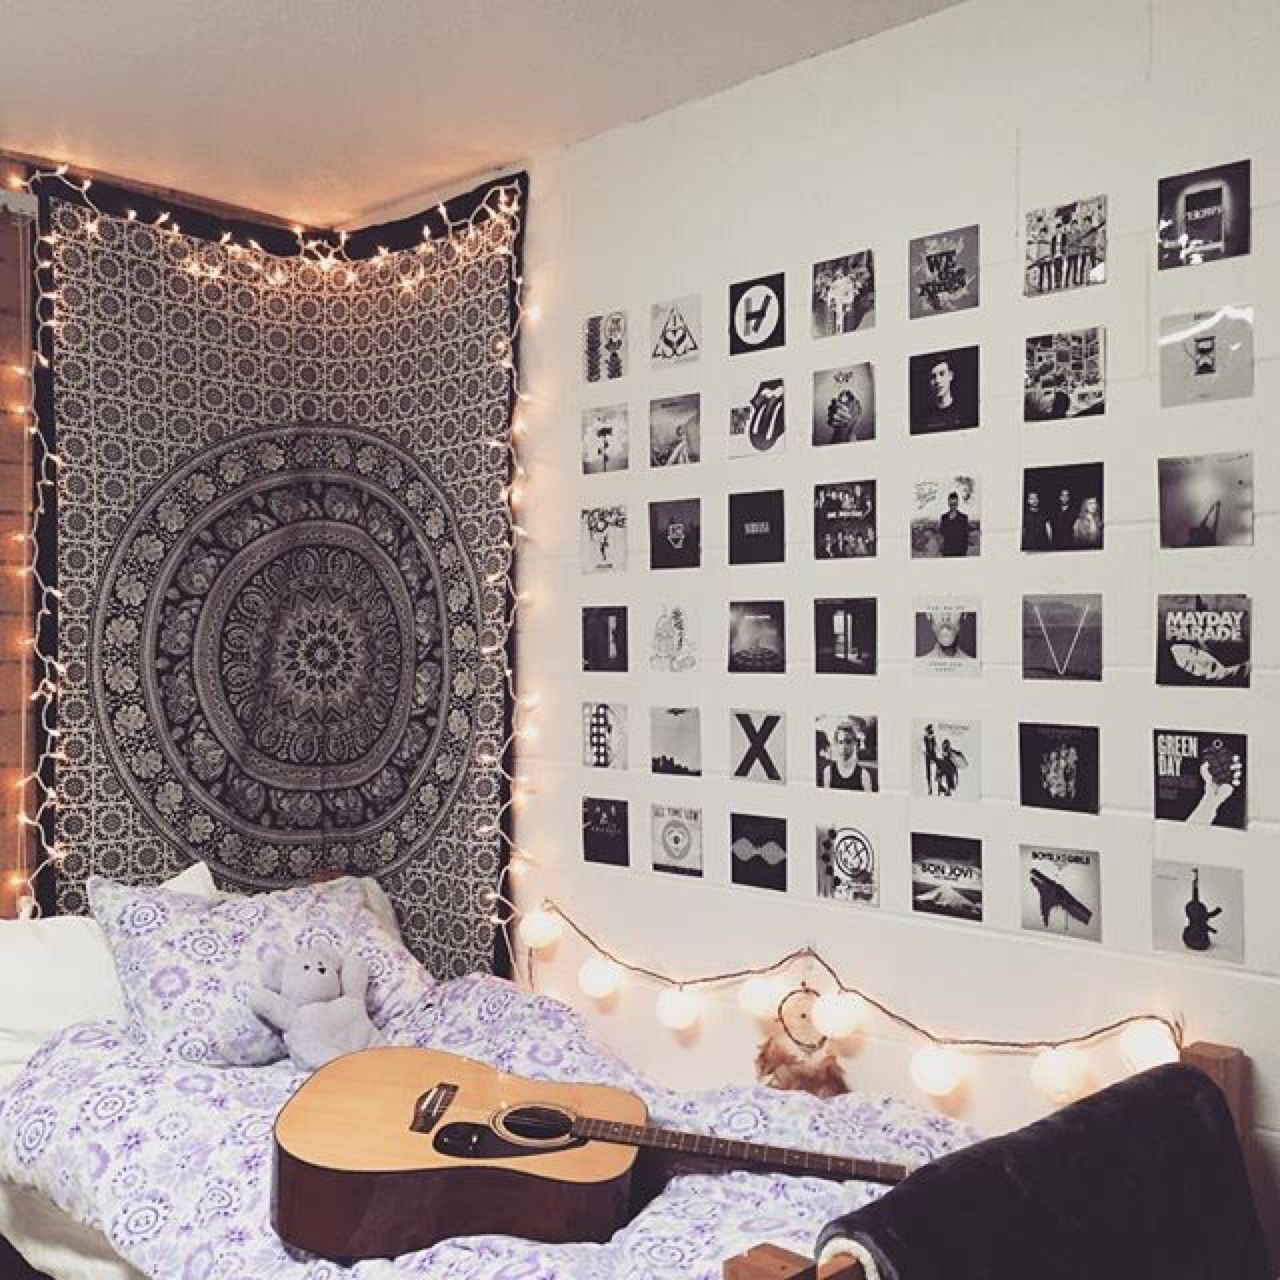 White bedroom ideas tumblr - Source Myroomspo Tapestry Bedroom Tumblr Bedroom Decoration Room Decor Diy Room Inspiration Poster Lights Fairy Lights